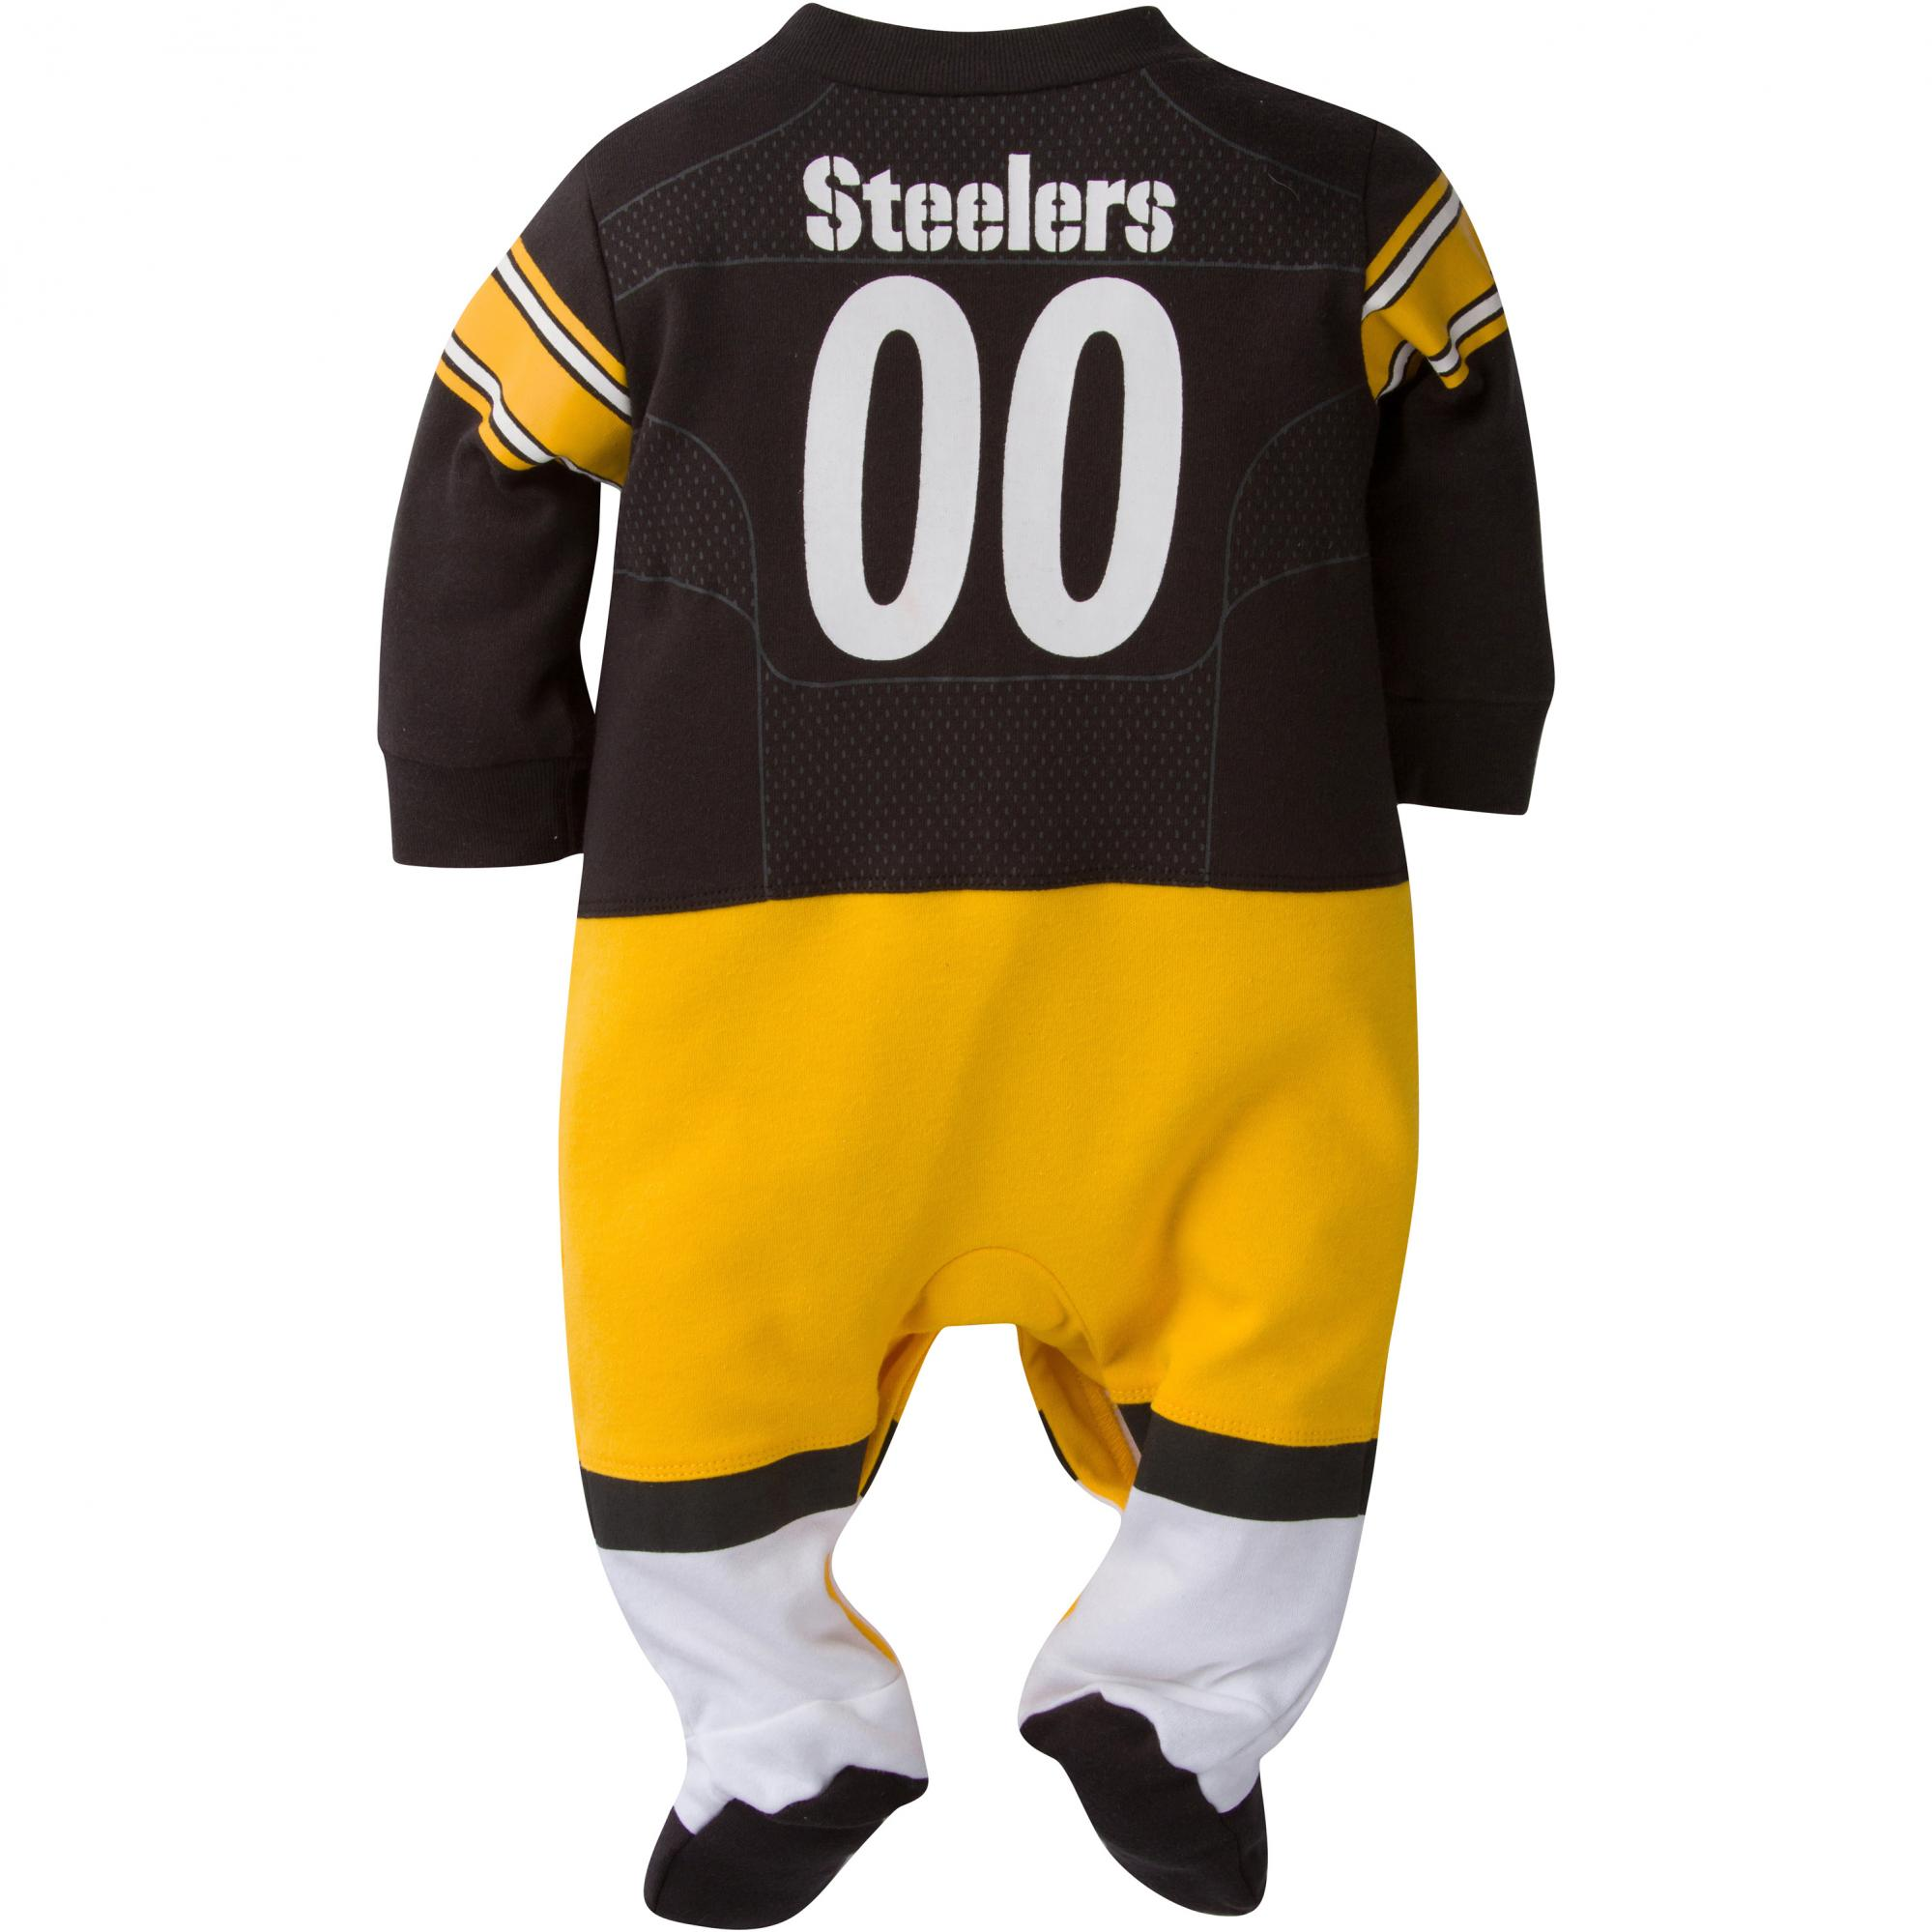 nfl-steelers-player-playersuit-back.jpg